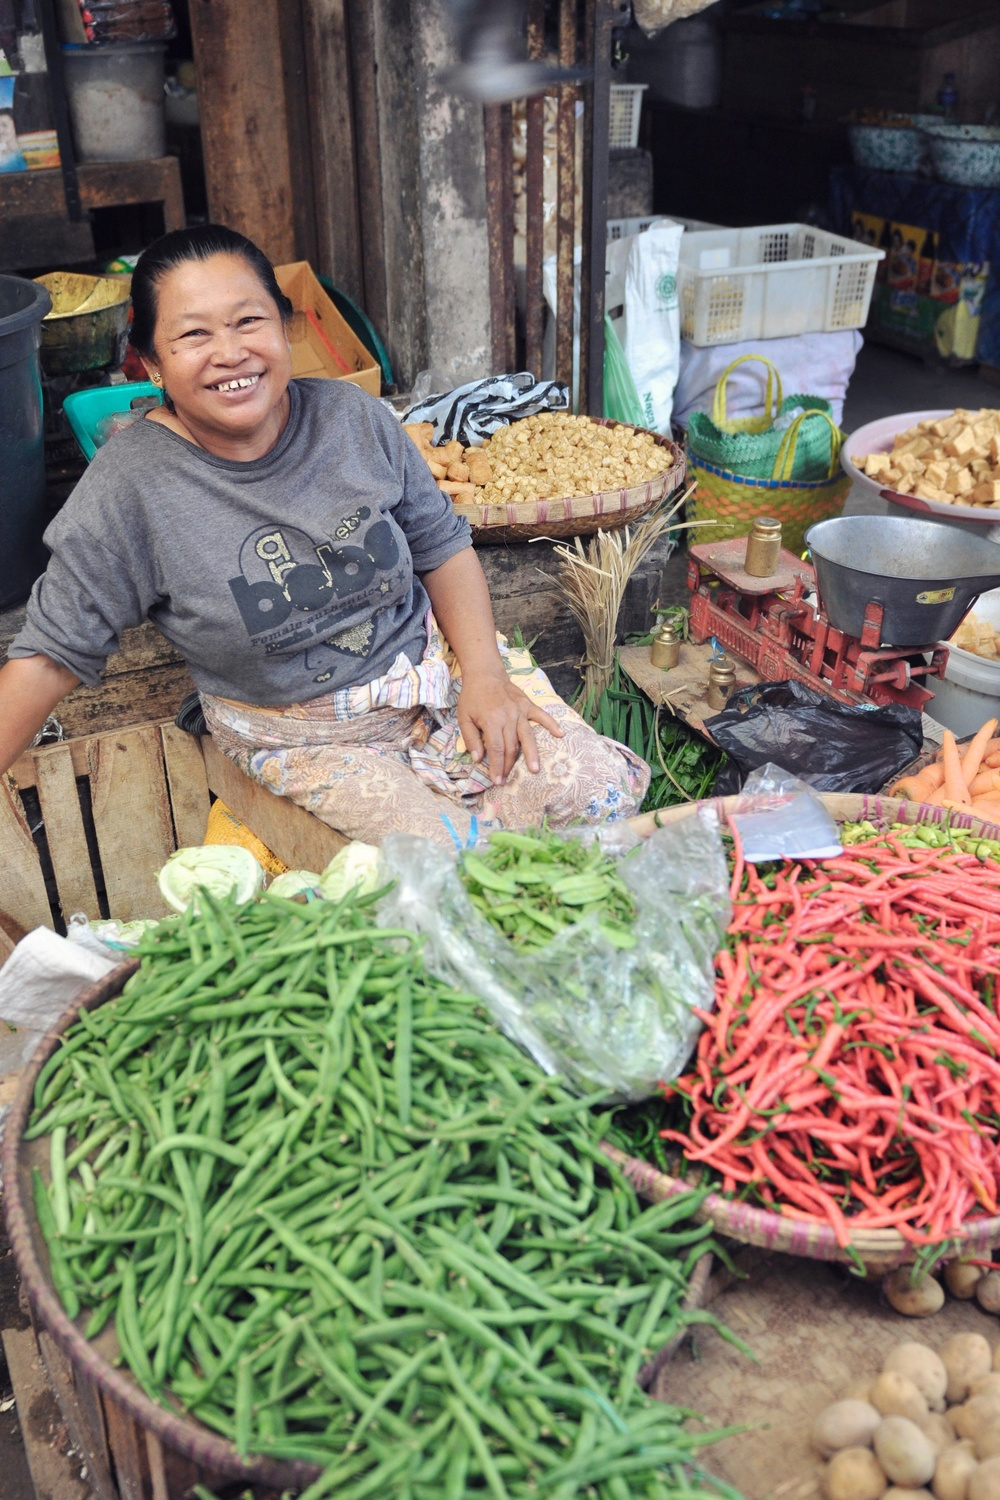 A cheery market vendor at Borobudur Market in Central Java, Indonesia | © Chavelli Tsui www.chavelli.com